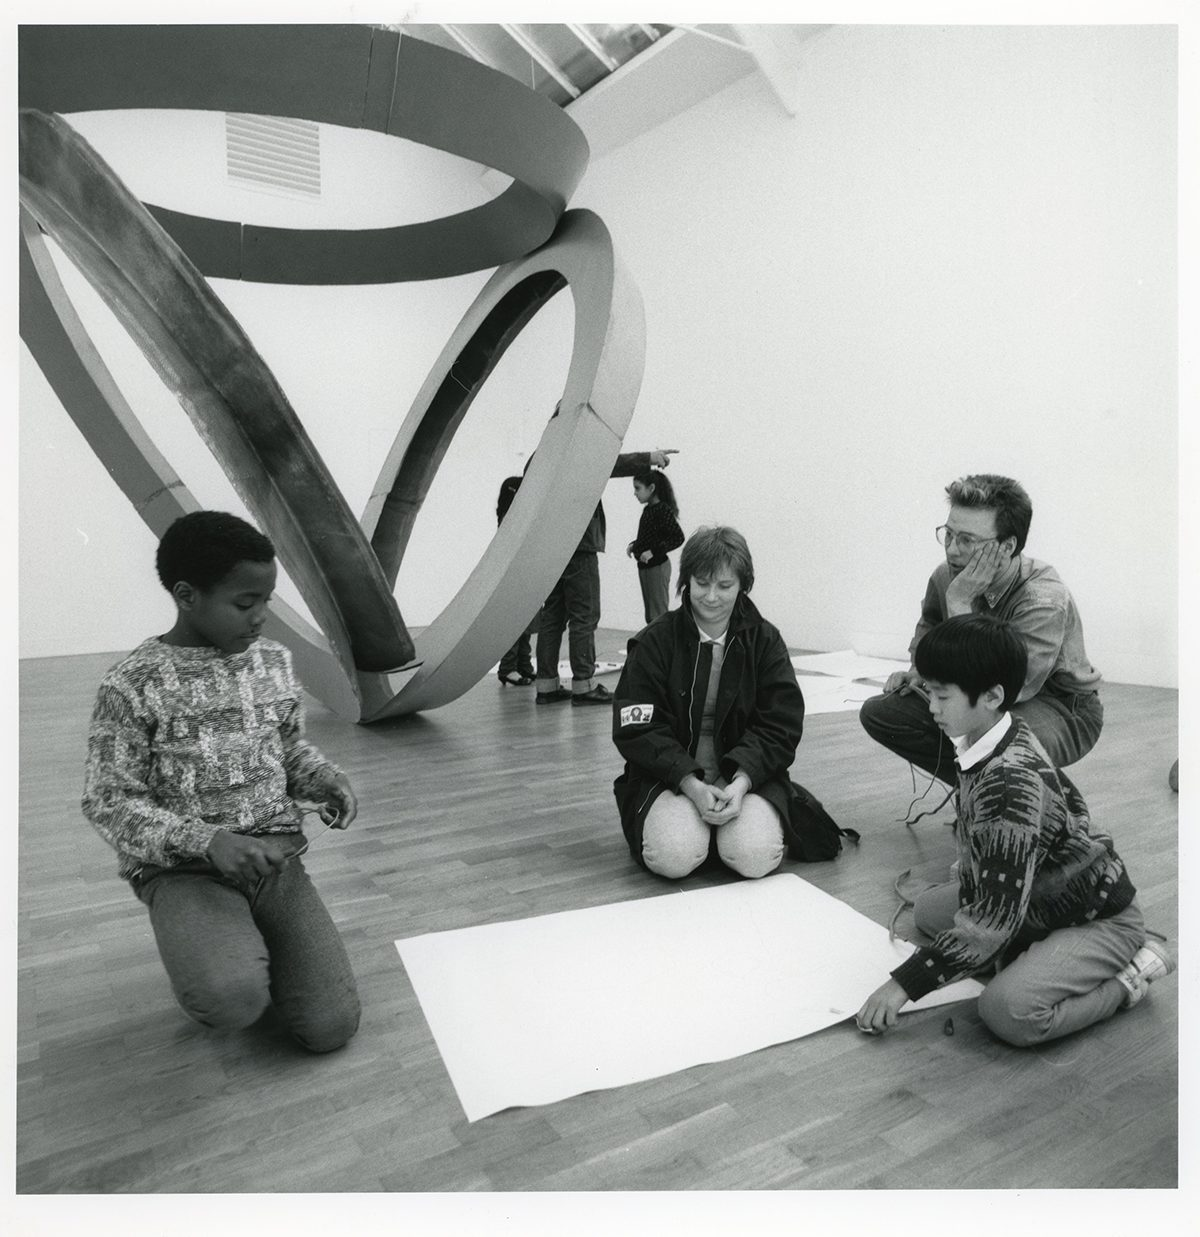 Jocelyn Clarke and Stephen Nelson leading a workshop with primary school pupils during the Bruce Nauman exhibition, 16 January – 8 March 1987, Whitechapel Gallery. Whitechapel Gallery Archive.